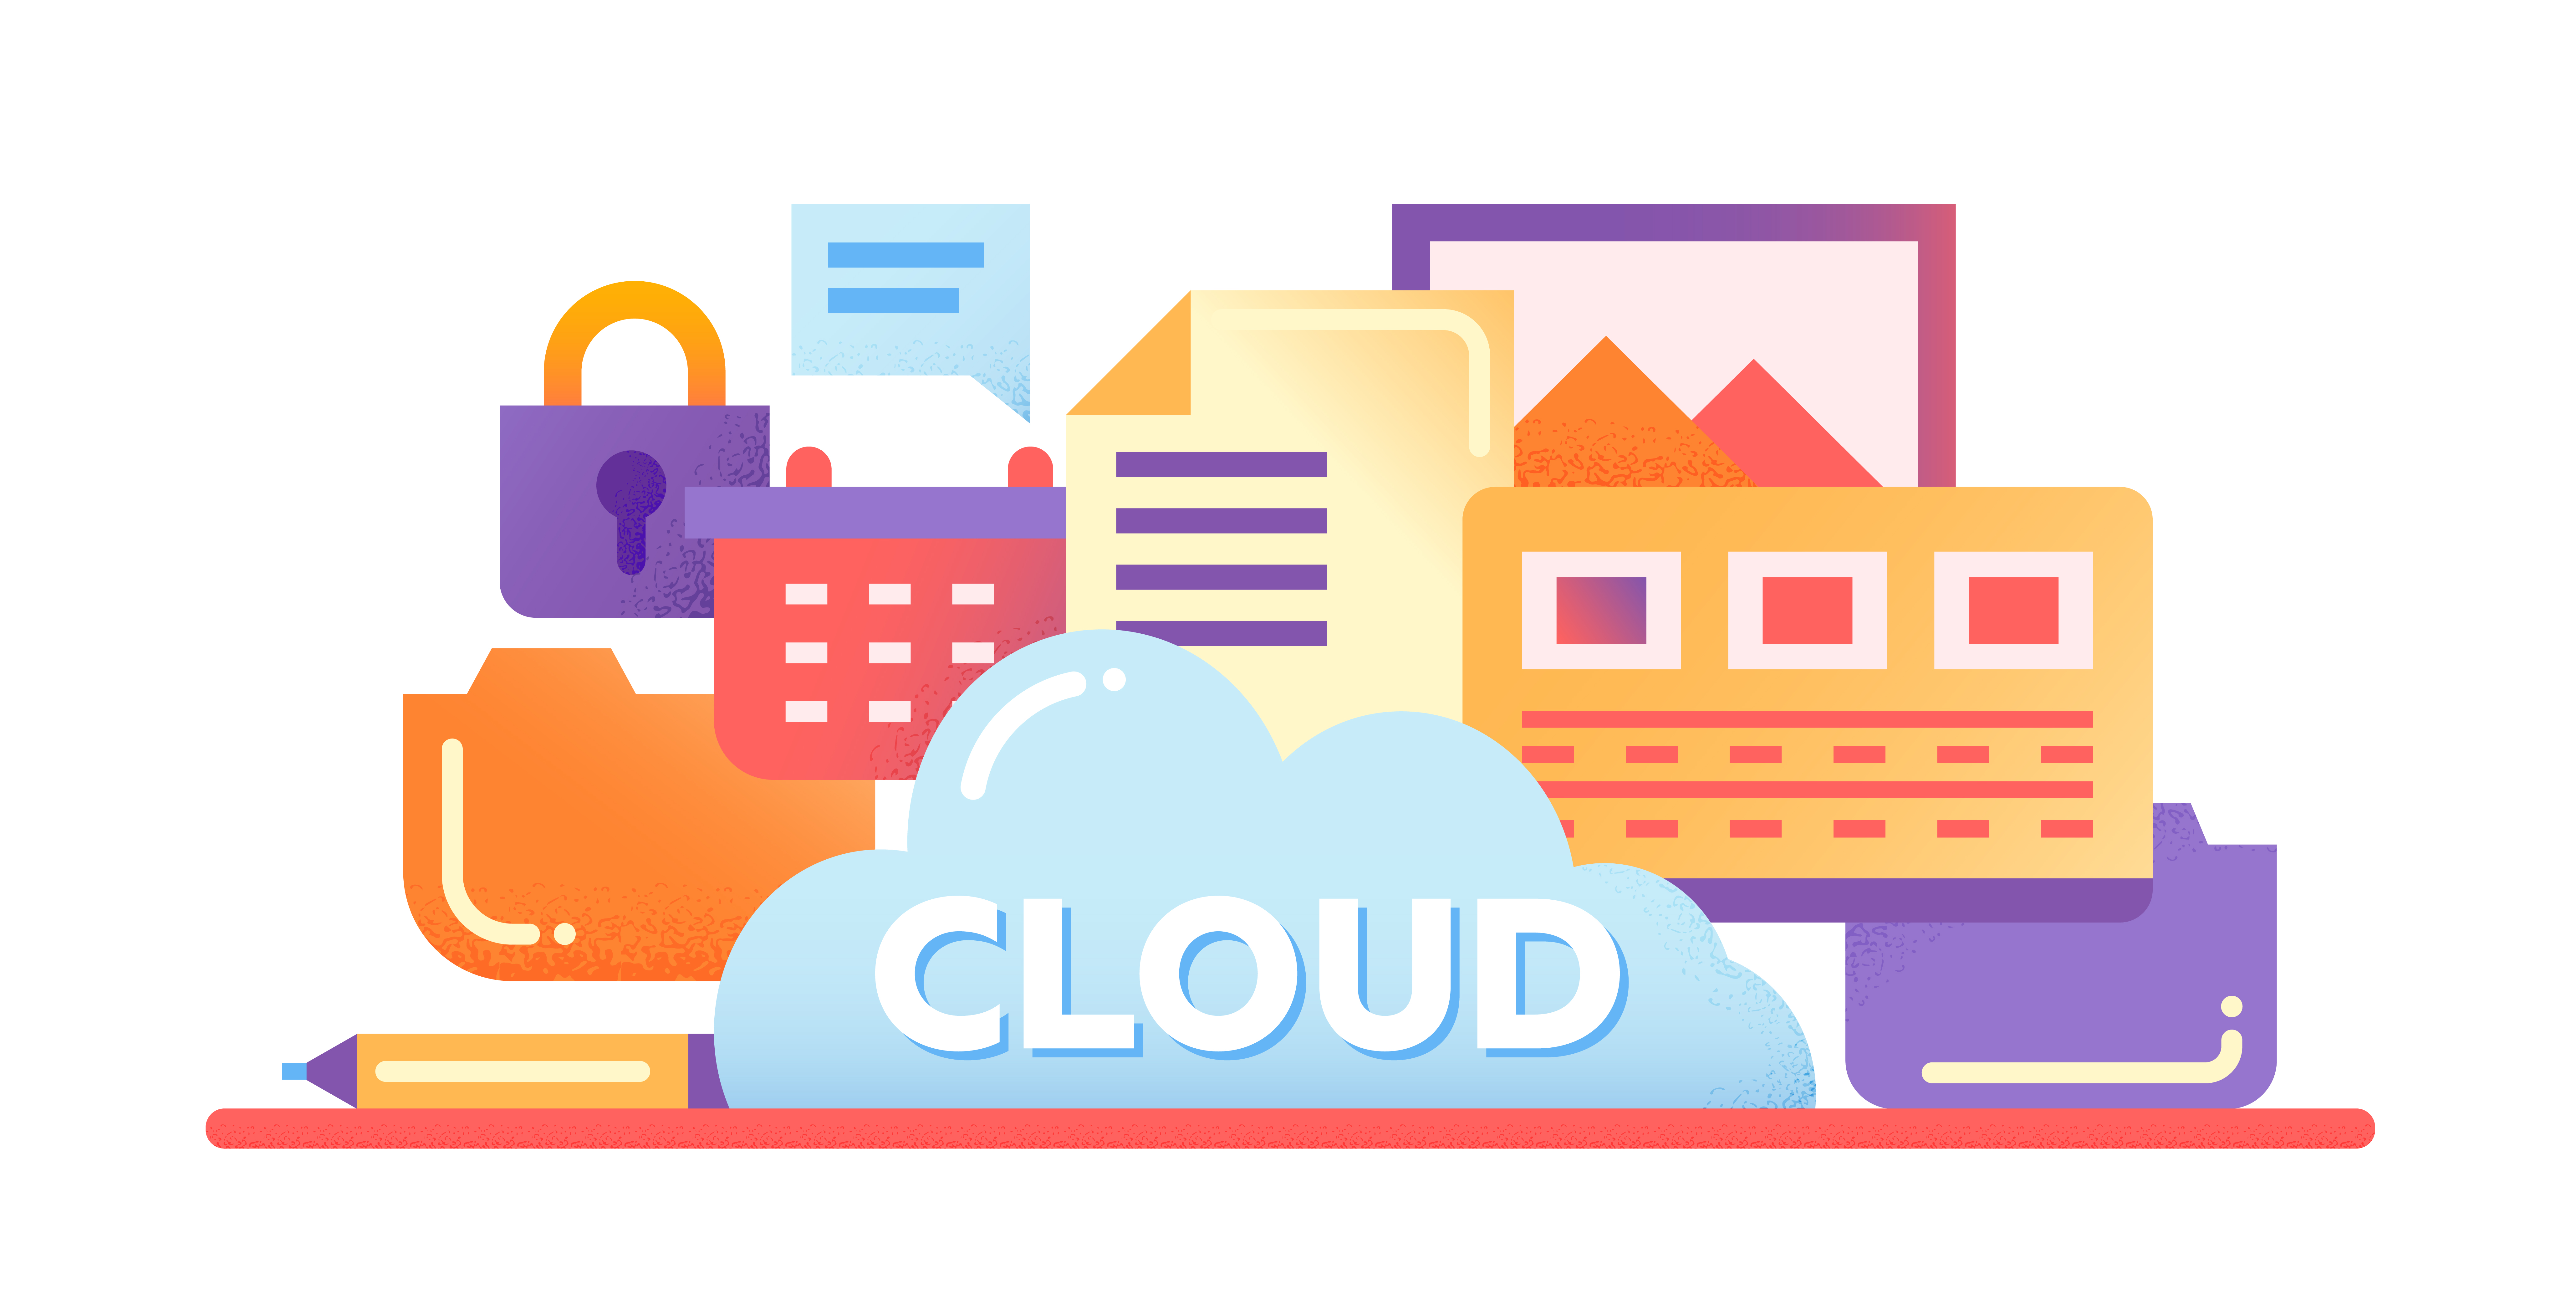 Cloud Storage Technology - vector modern flat design illustration with files, cloud, lock and other computer symbols